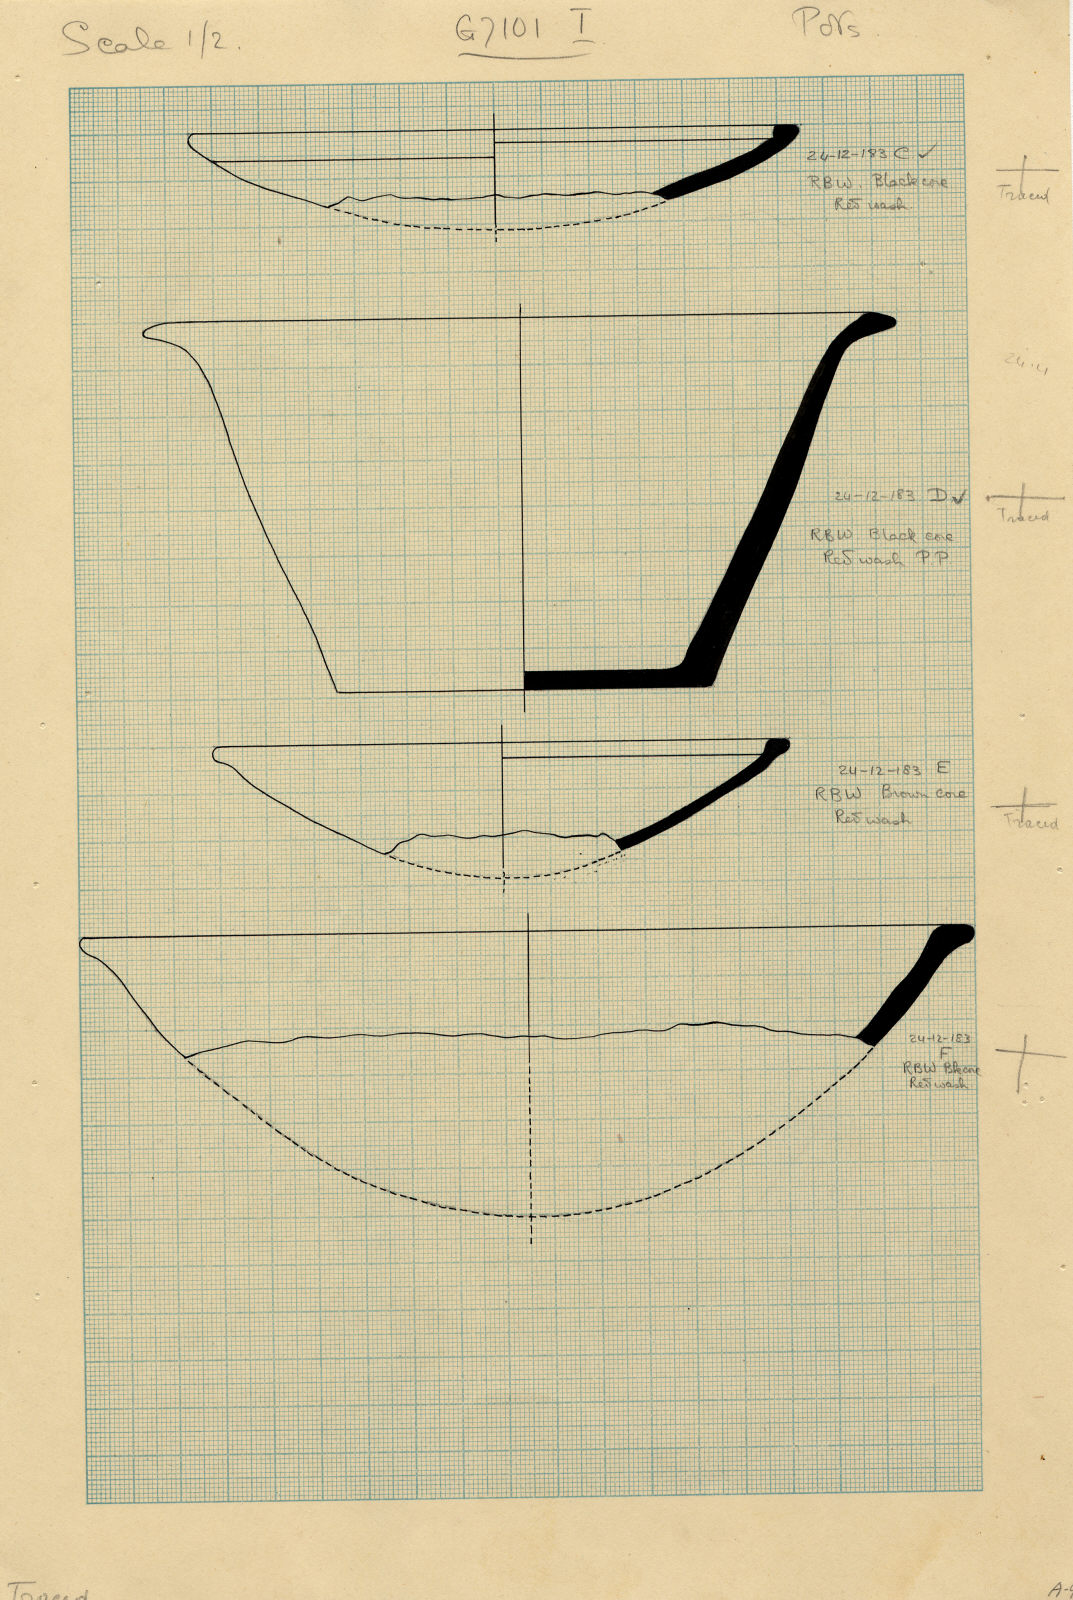 Drawings: G 7101, Shaft C to F and I: pottery, bowls